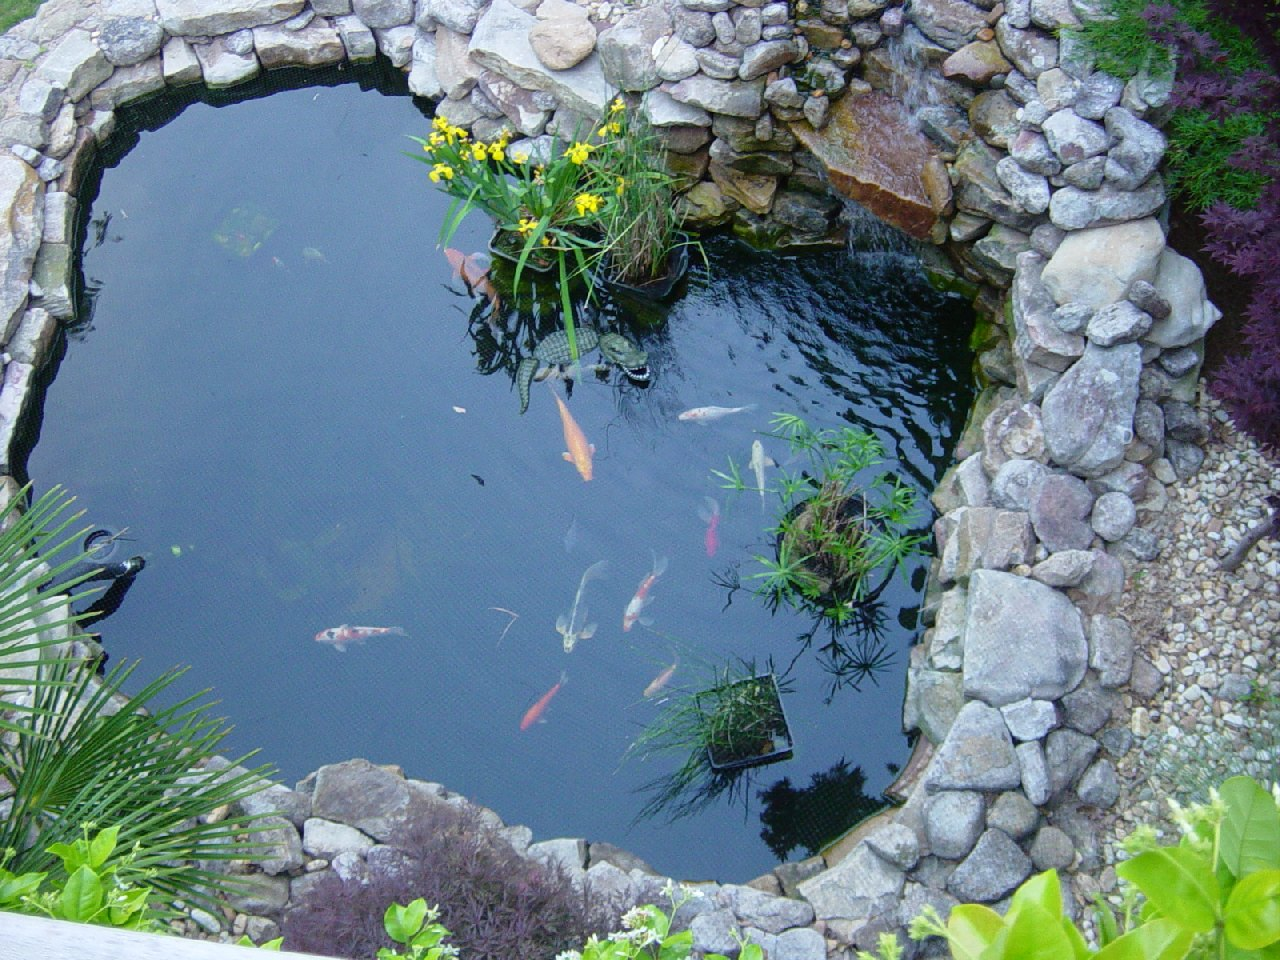 Luxury koi fish pond design ideas home trendy for Fish pond design